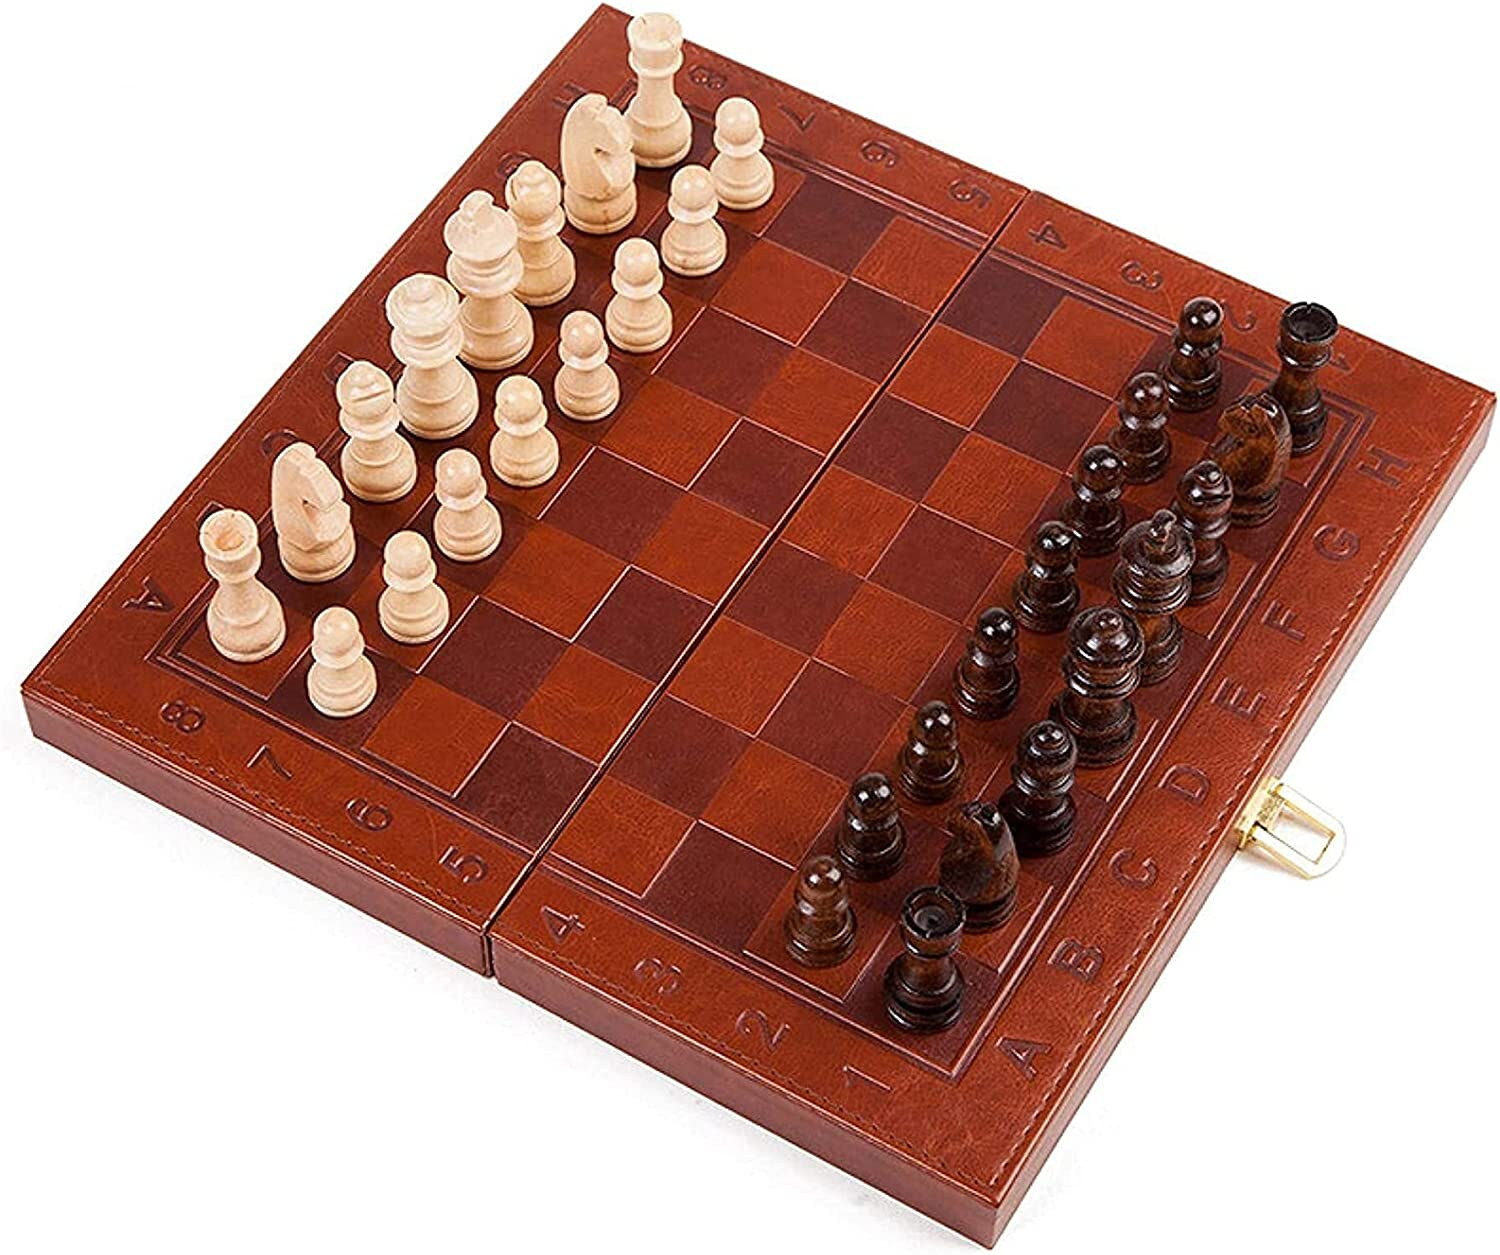 MTCWD Chess Board Set Game online shop Magnetic Portab 4 years warranty